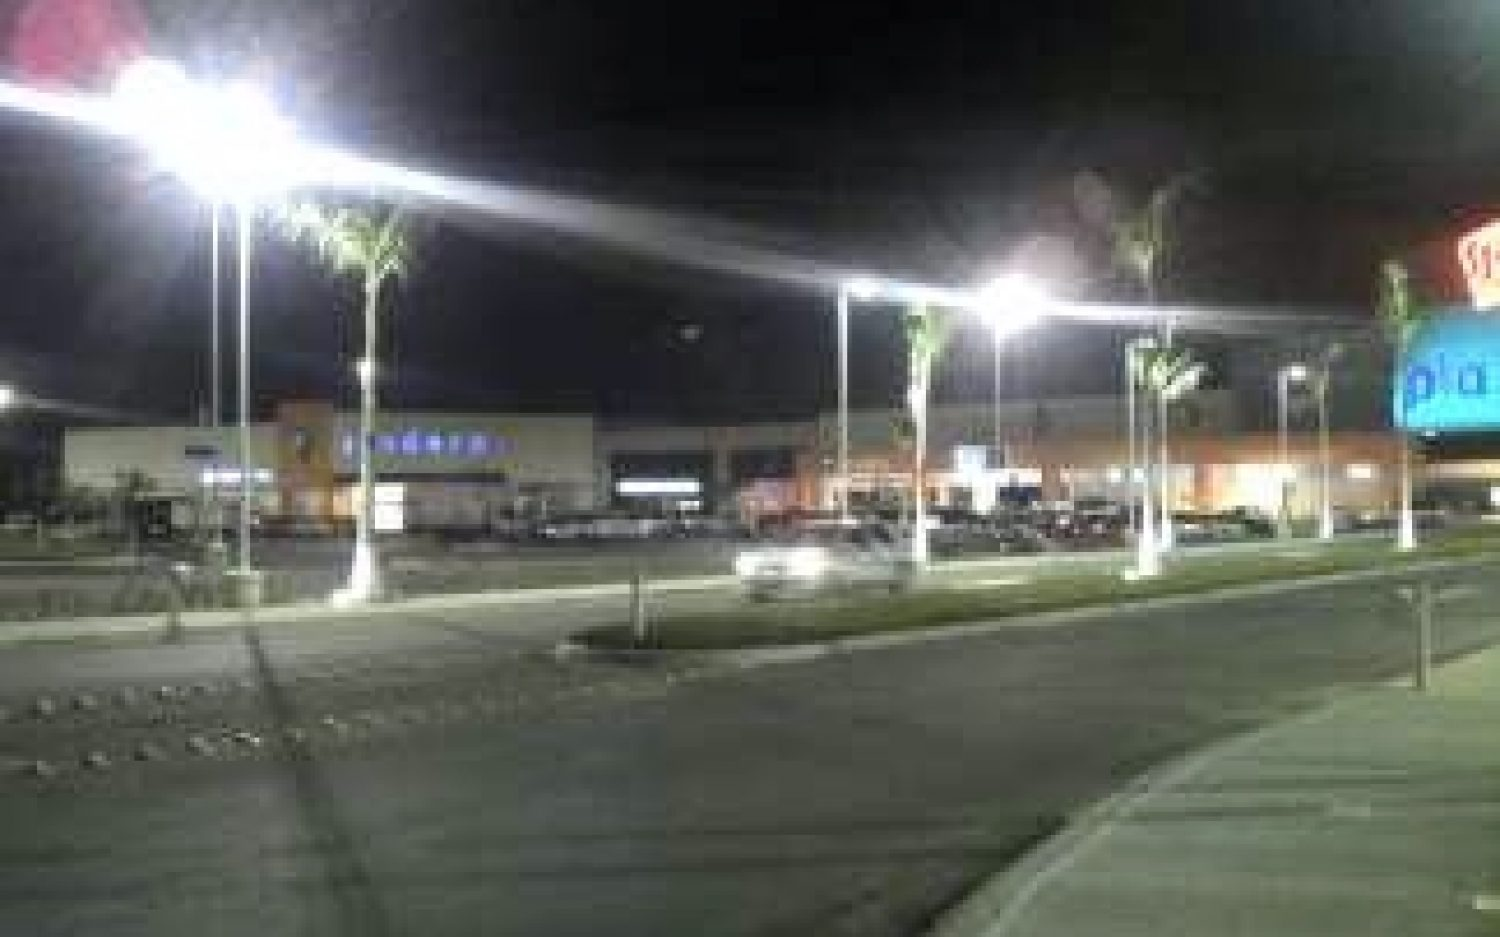 Co-Plaza Sendero Villahermosa (17)